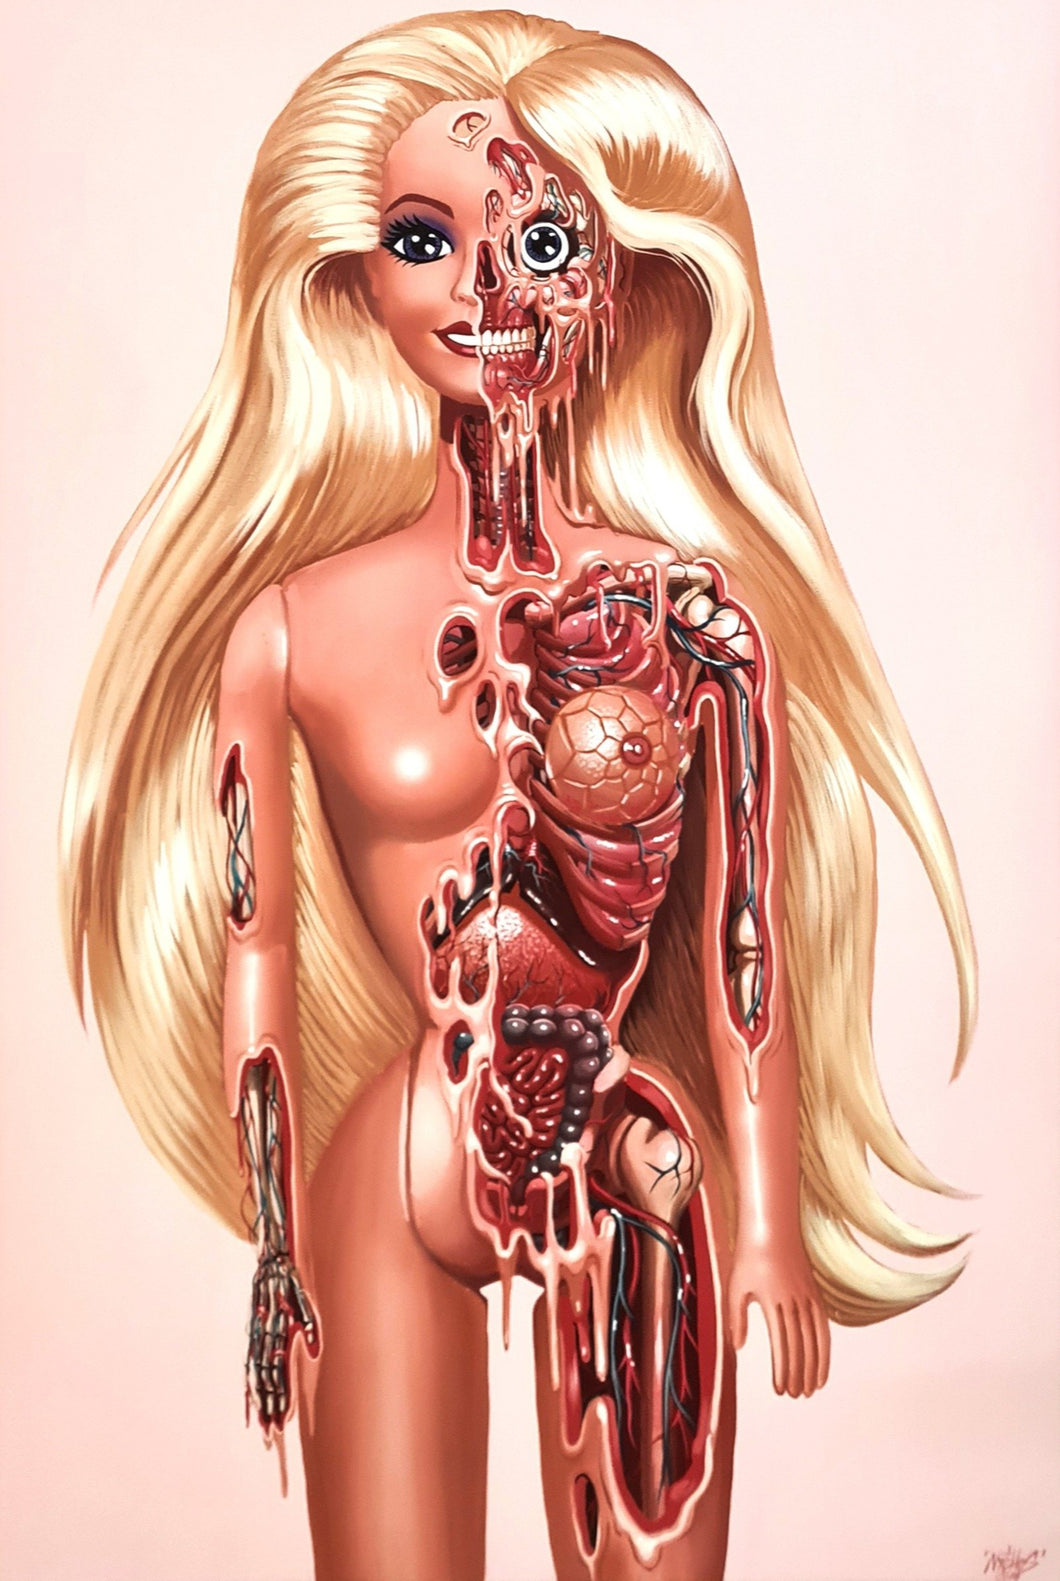 Nychos - Barbie Meltdown